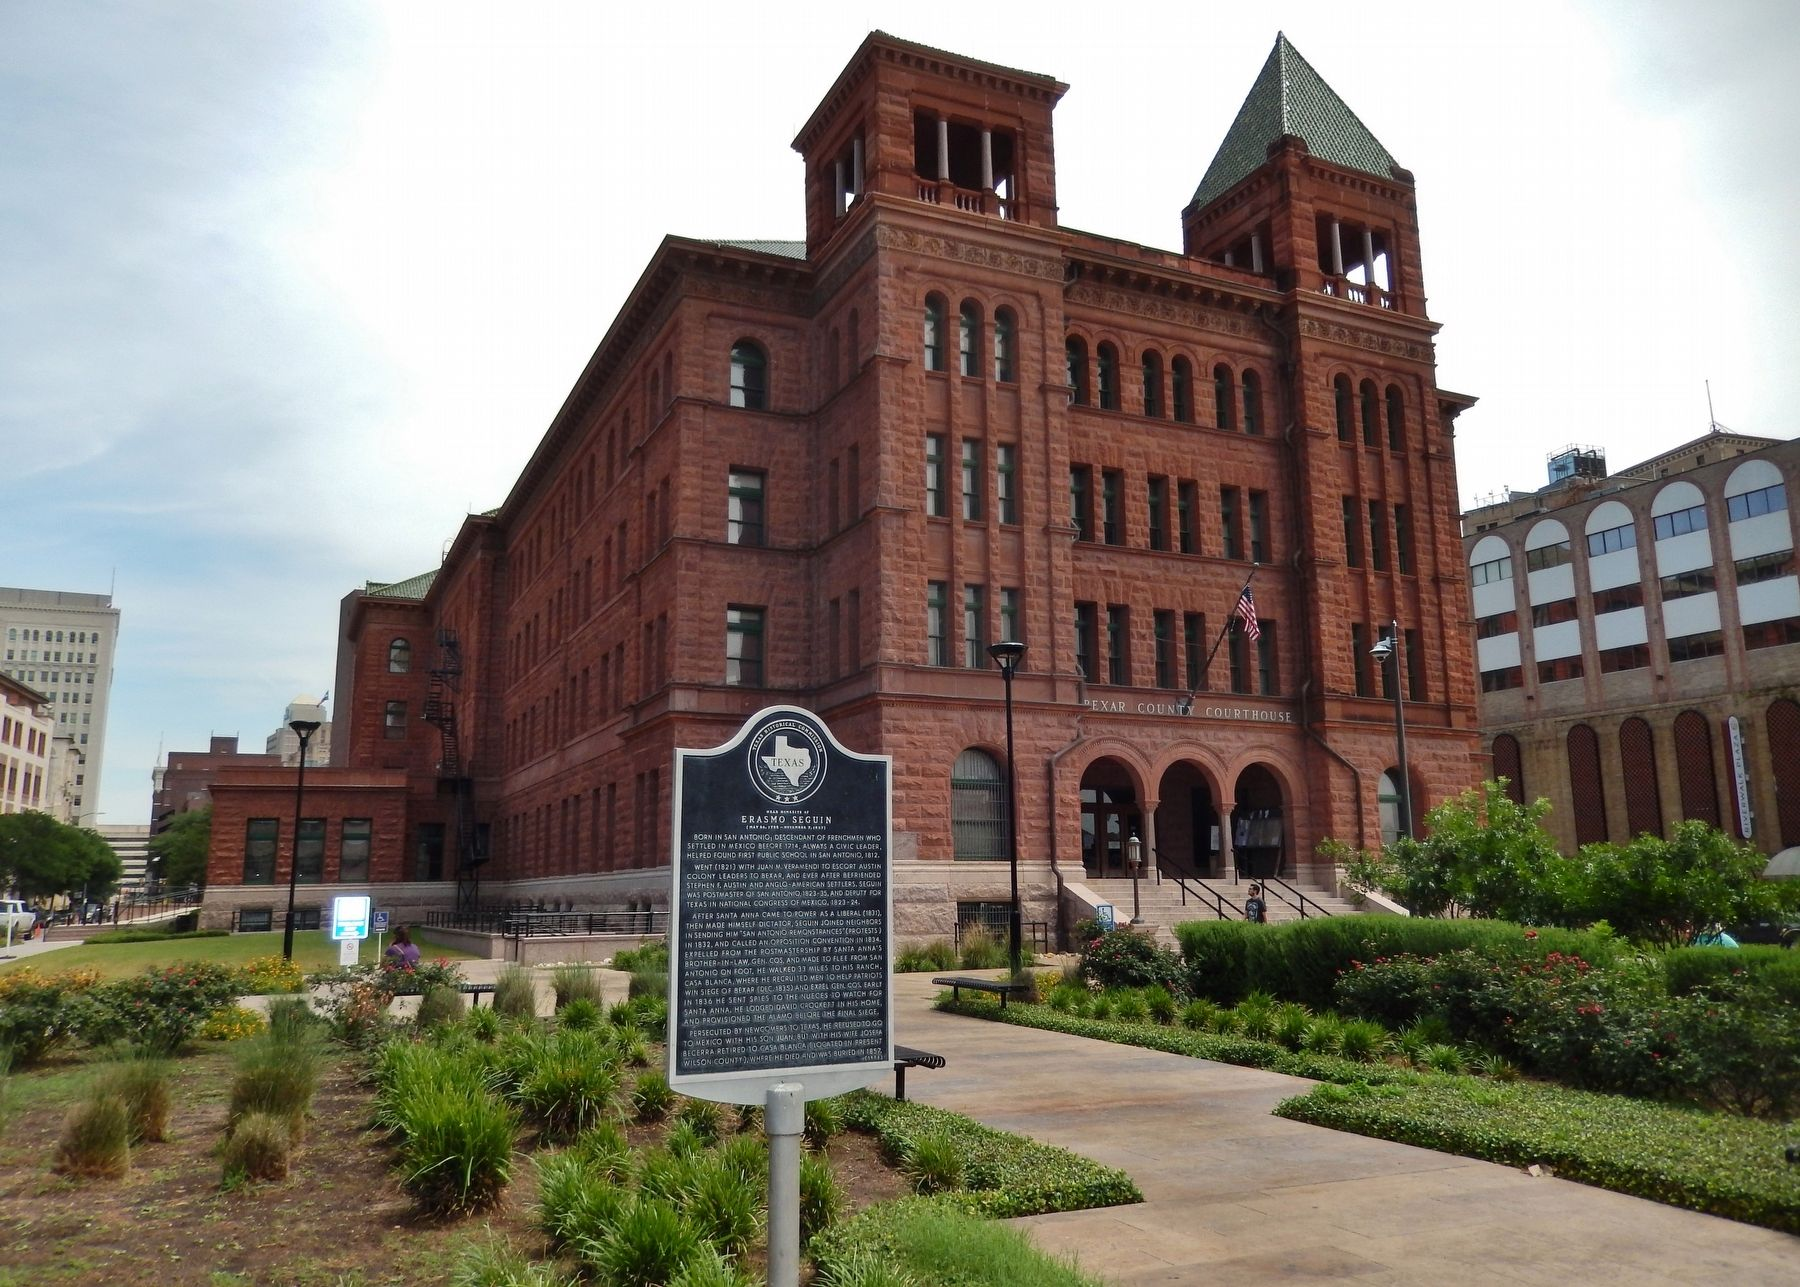 Bexar County Courthouse was originally built in 1896 and expanded on several occasions over the years. It remains one of the city's most important buildings.